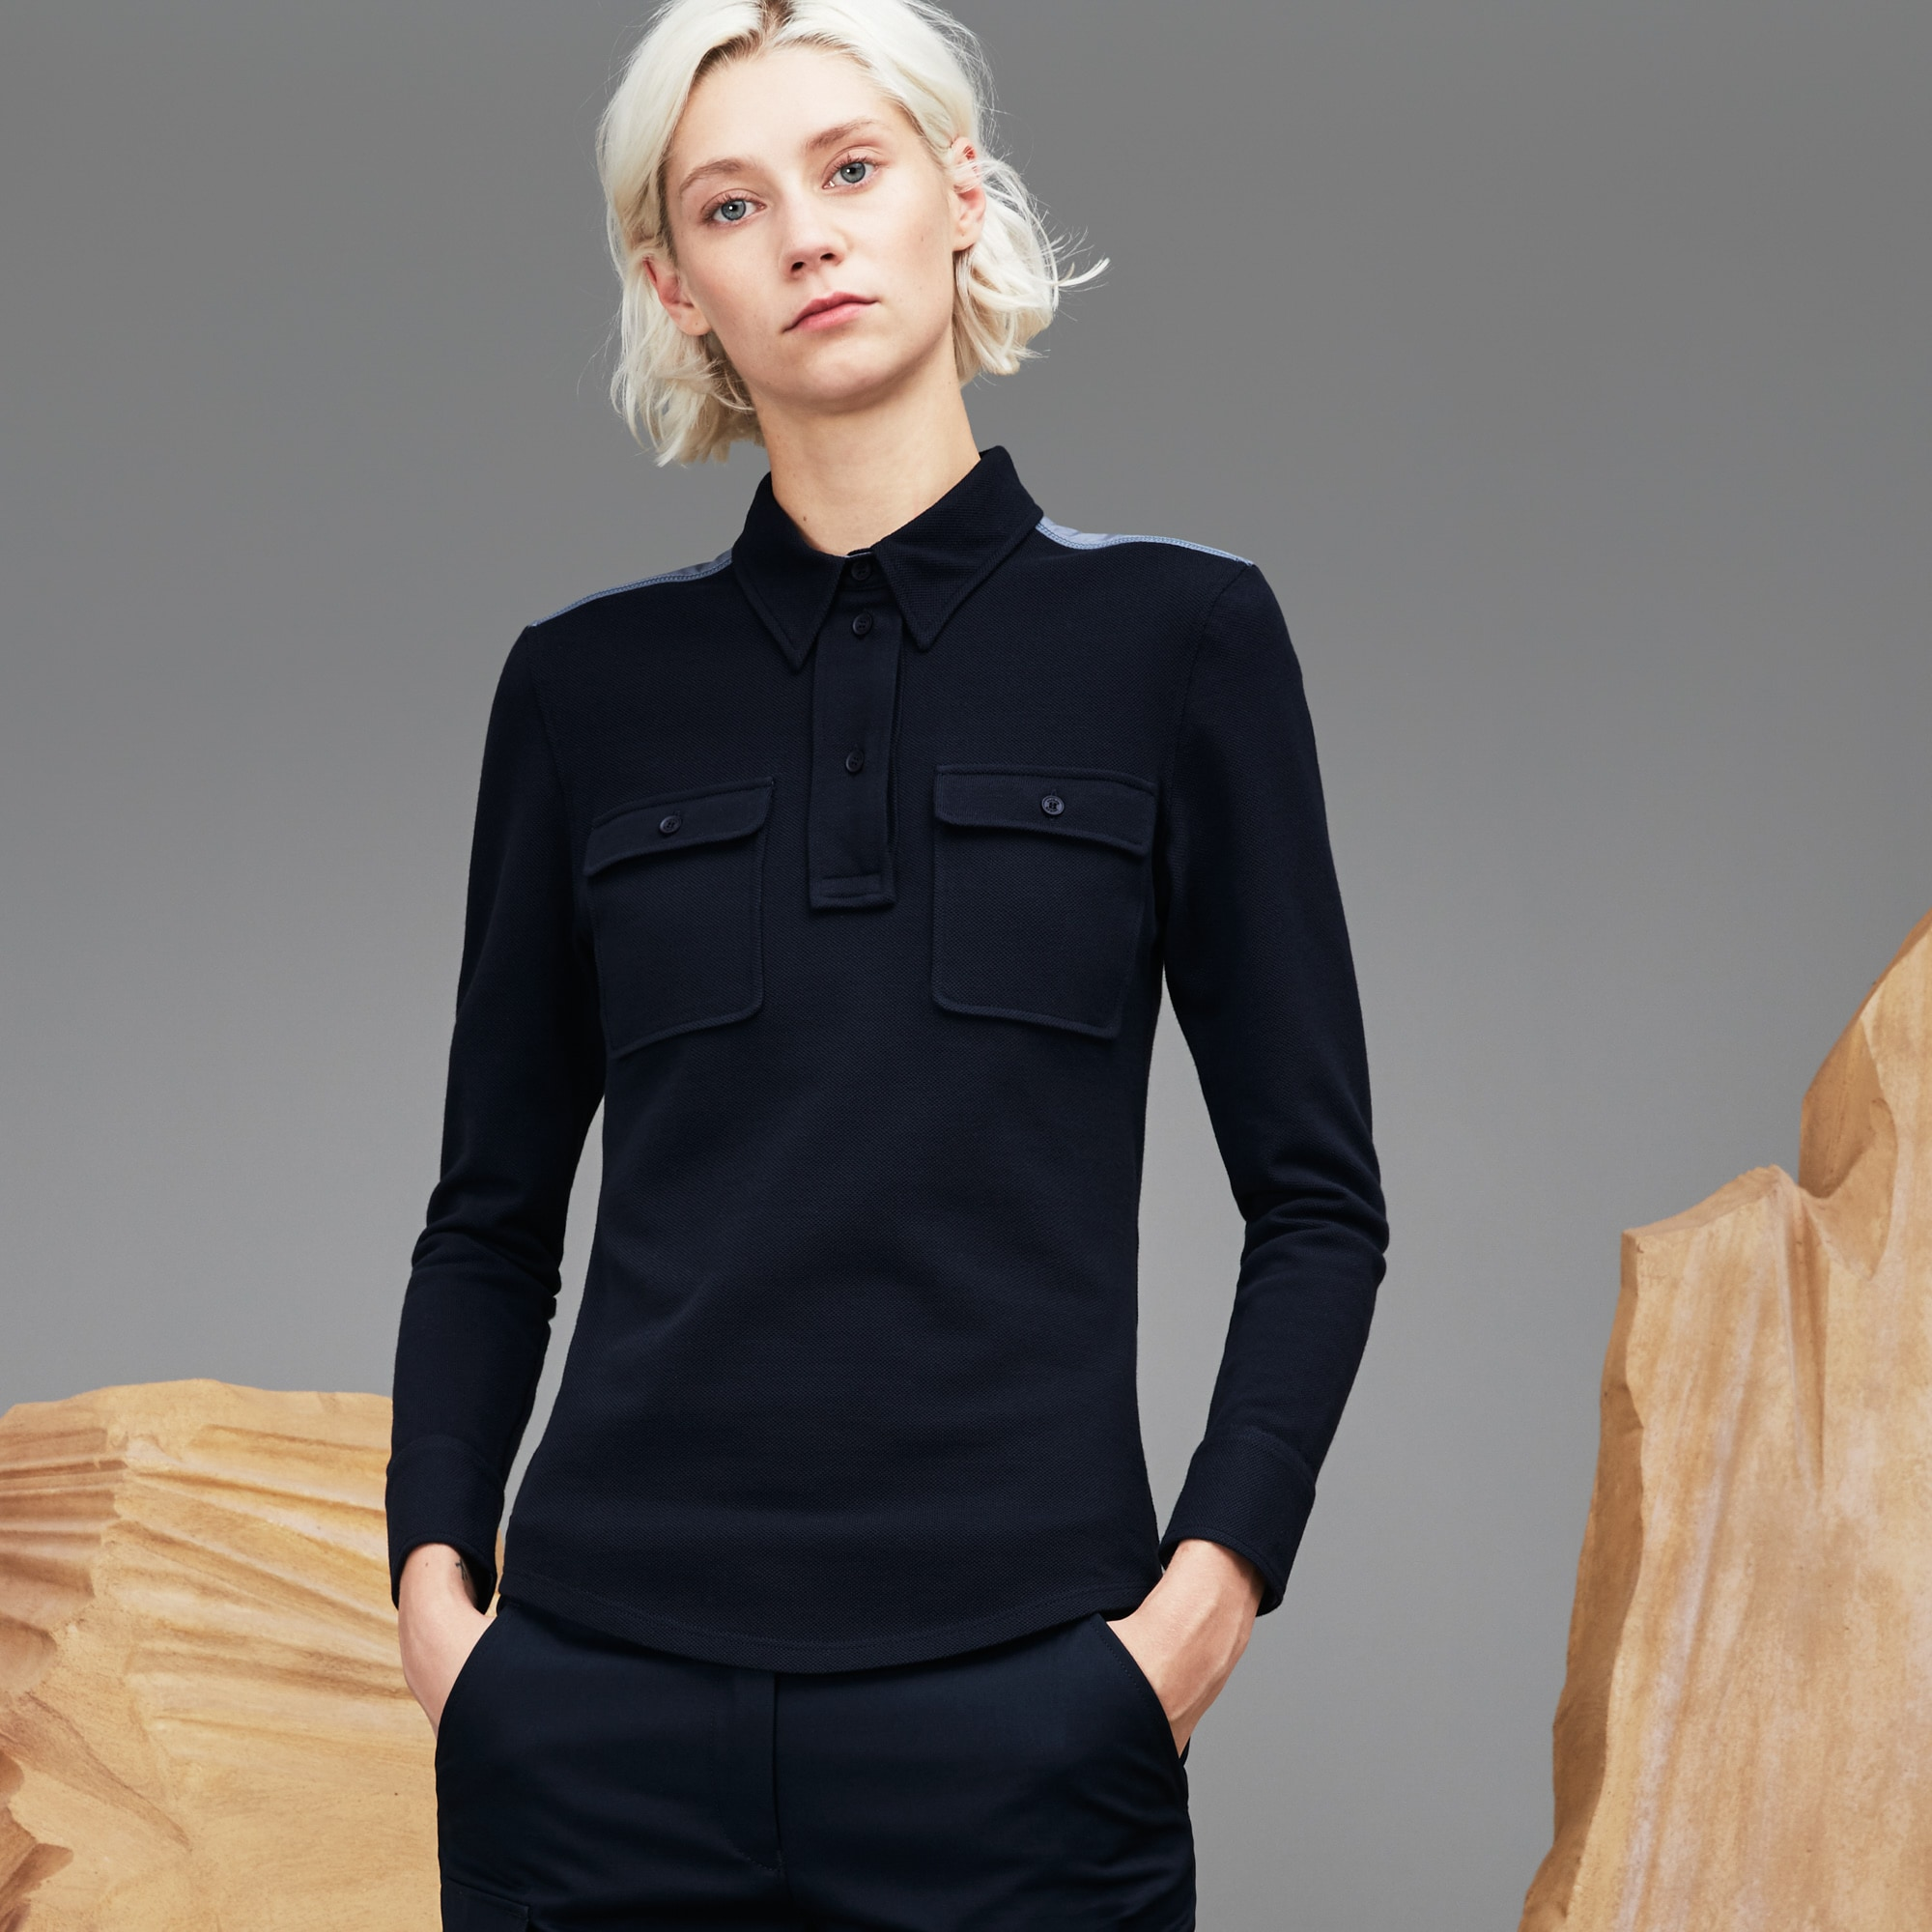 Women's  Fashion Show Piqué Polo With Flap Pockets